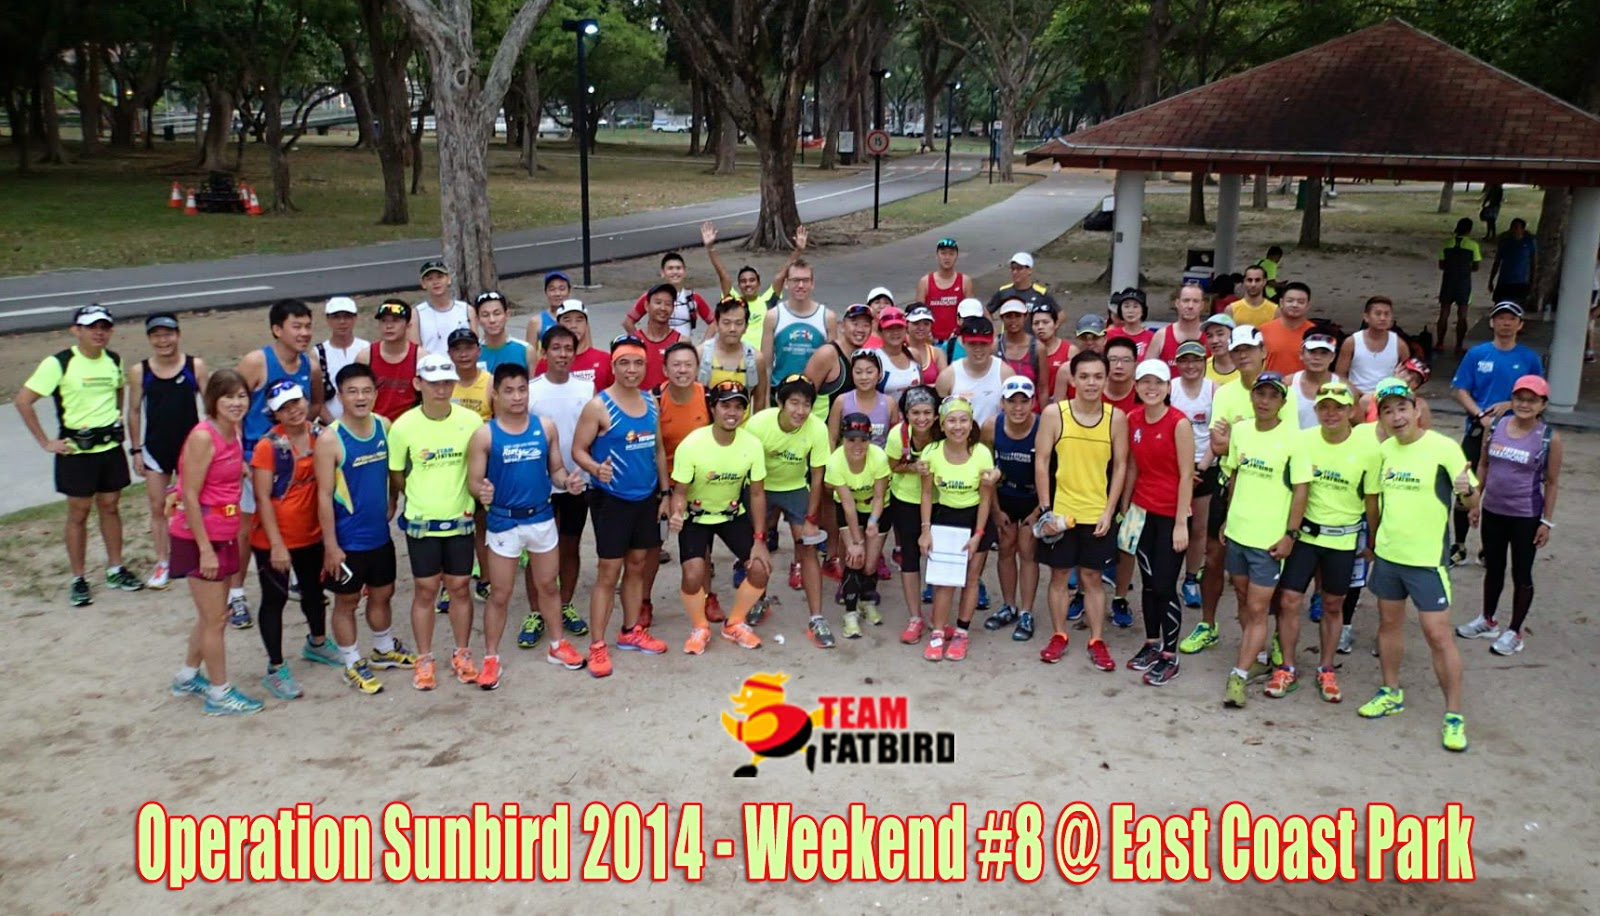 Sunbirds enjoyed cool weather Marathon Pace LSD